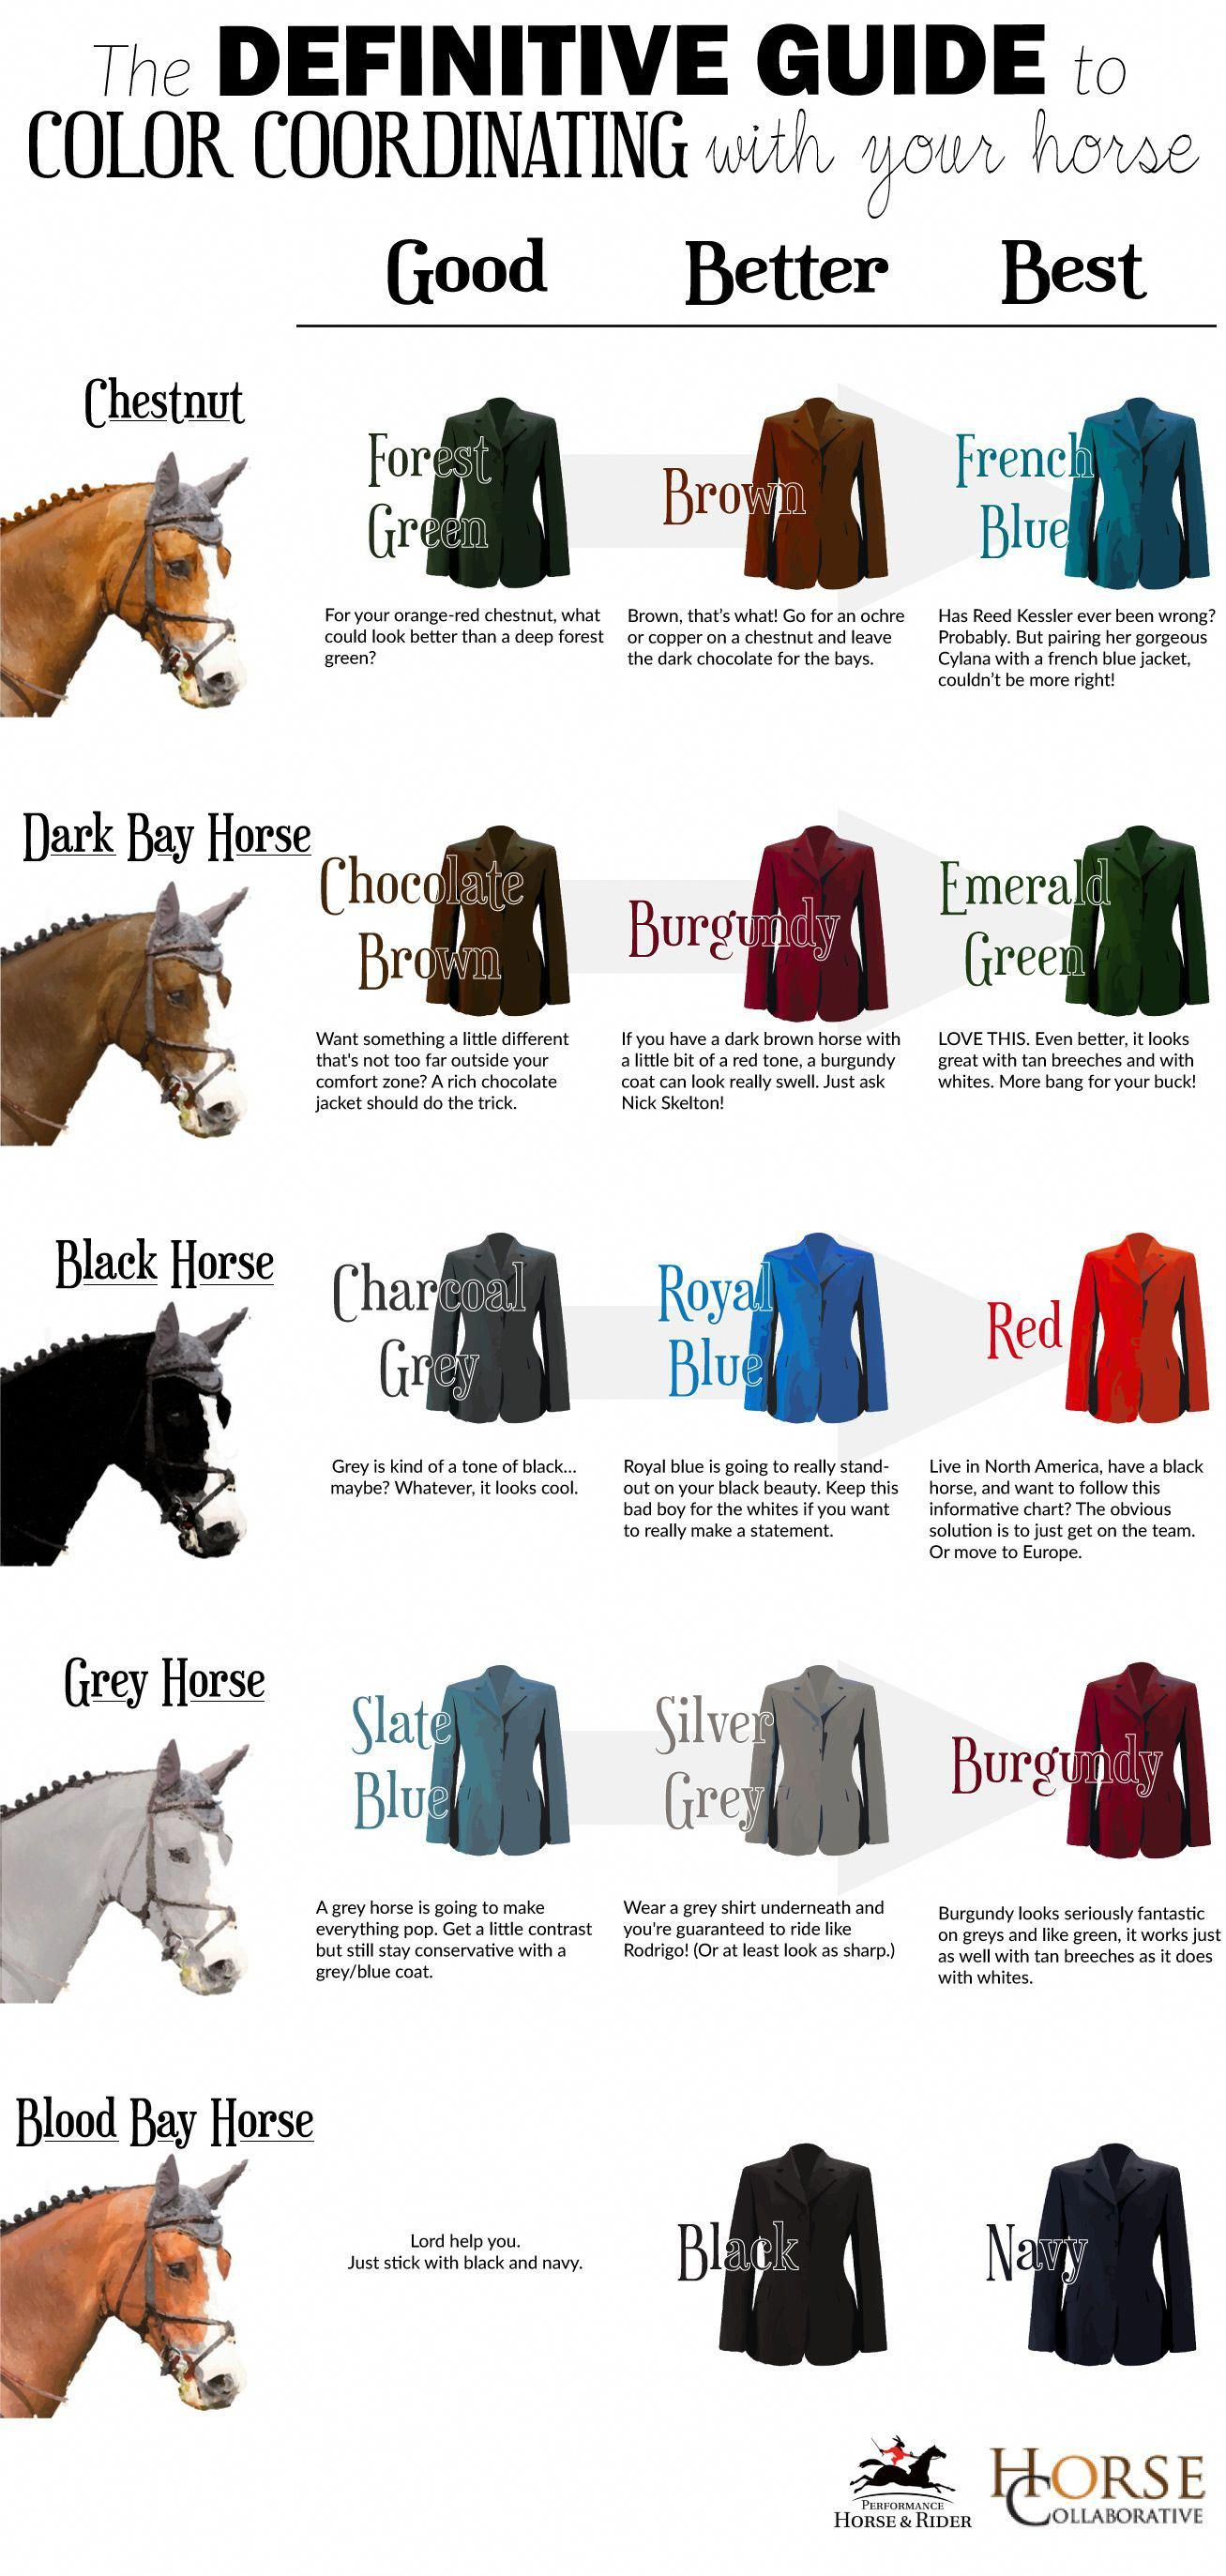 Next To Non Chafing Undergarments It S The Most Important Wardrobe Decision You Ll Make For The Show Ring H Horse Fashion Equestrian Outfits Equestrian Style